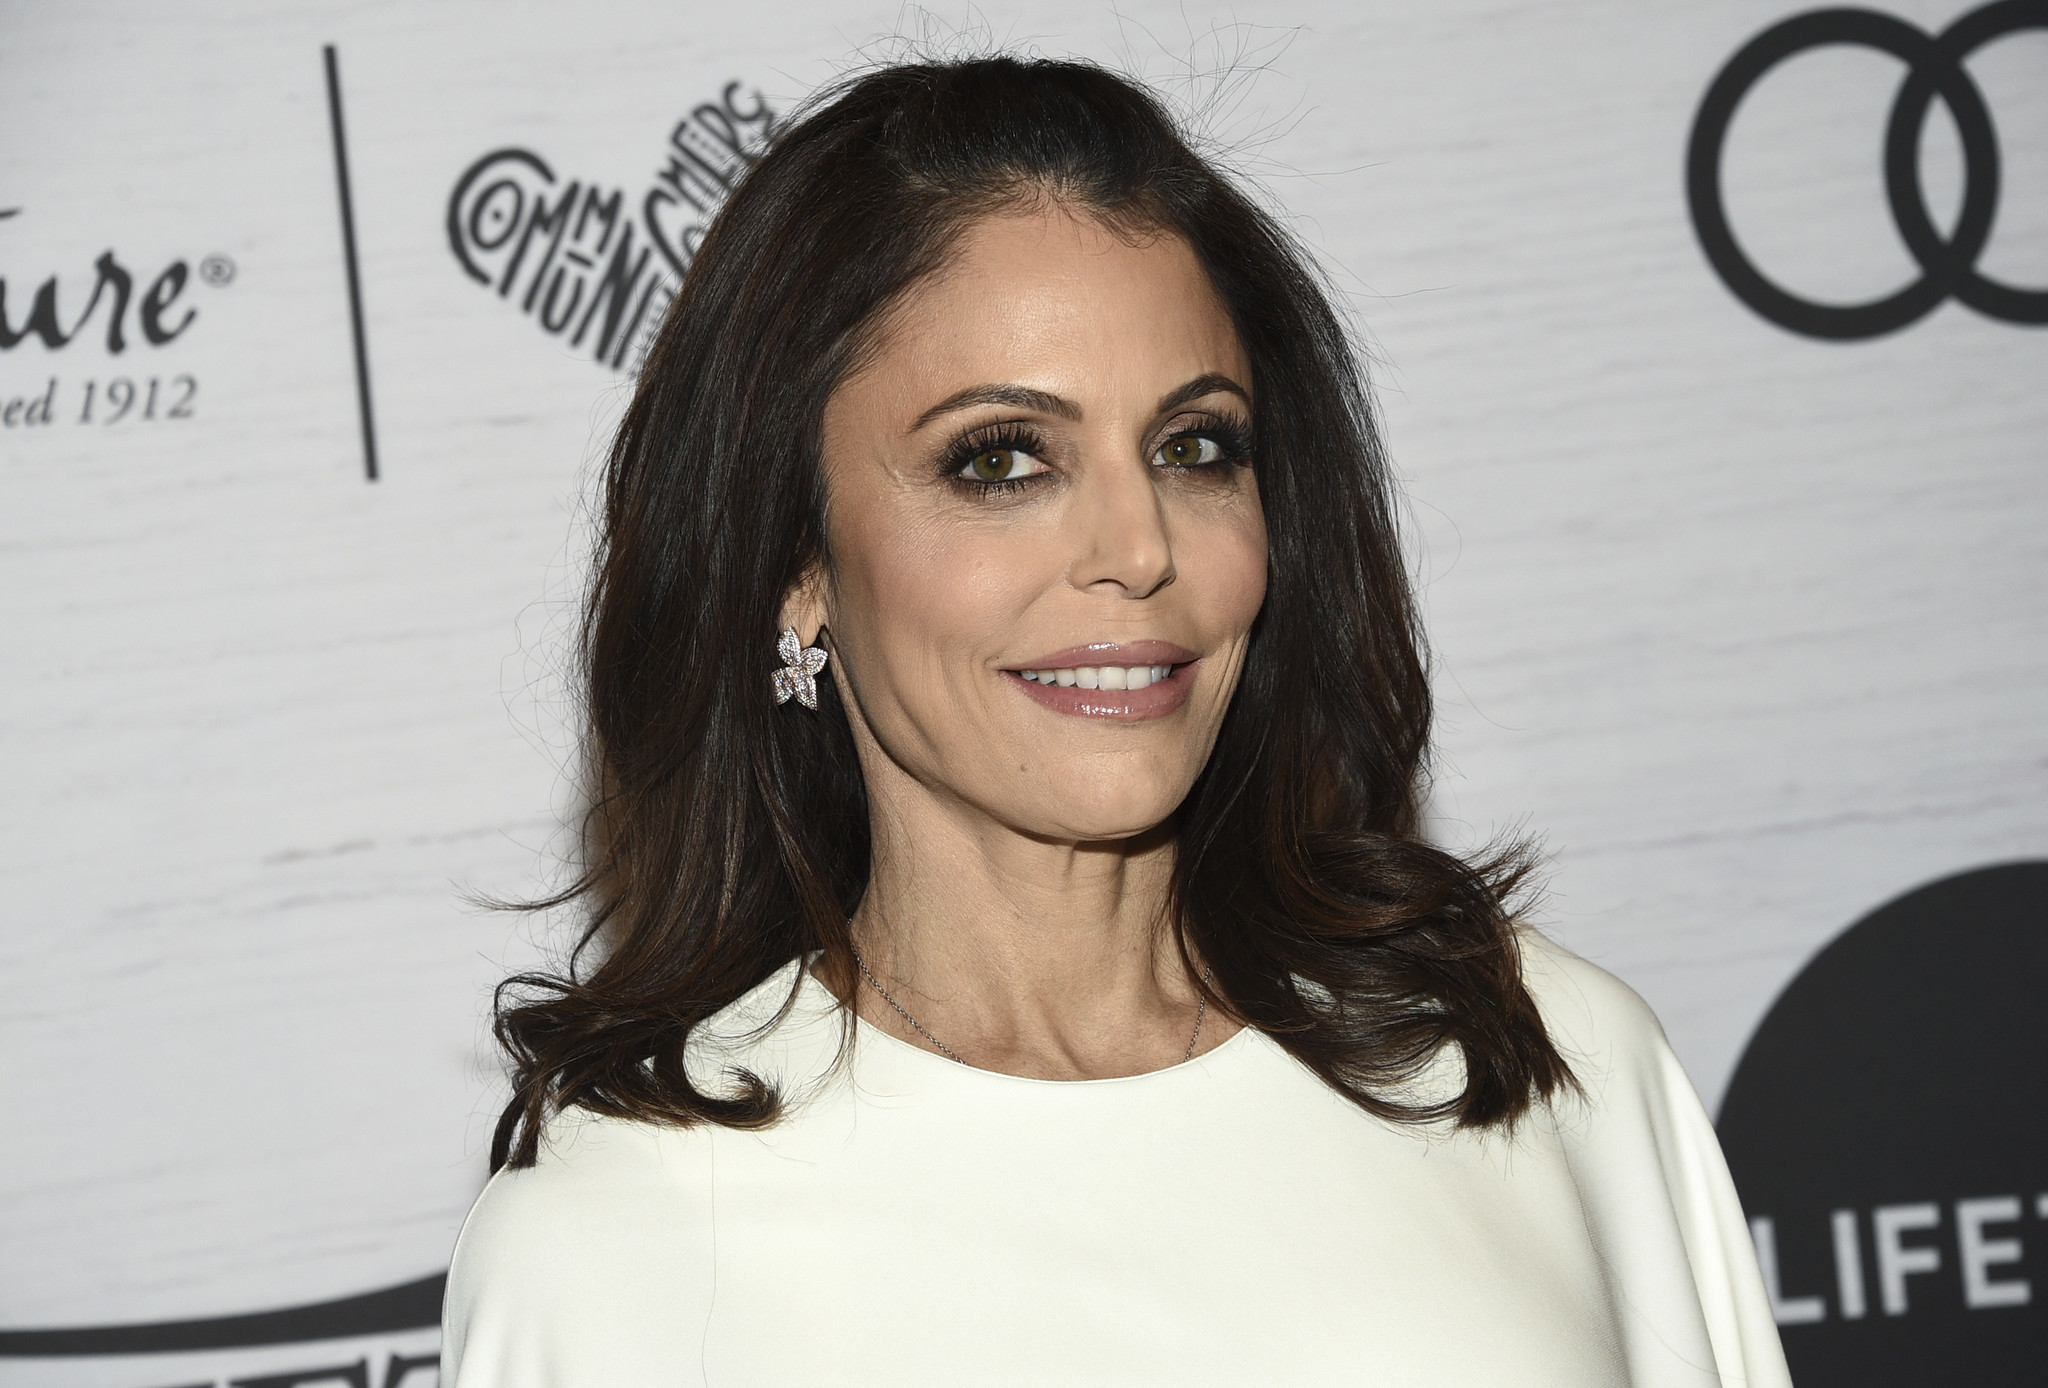 Bethenny Frankel returns to television with new reality competition series 'Big Shot' on HBO Max